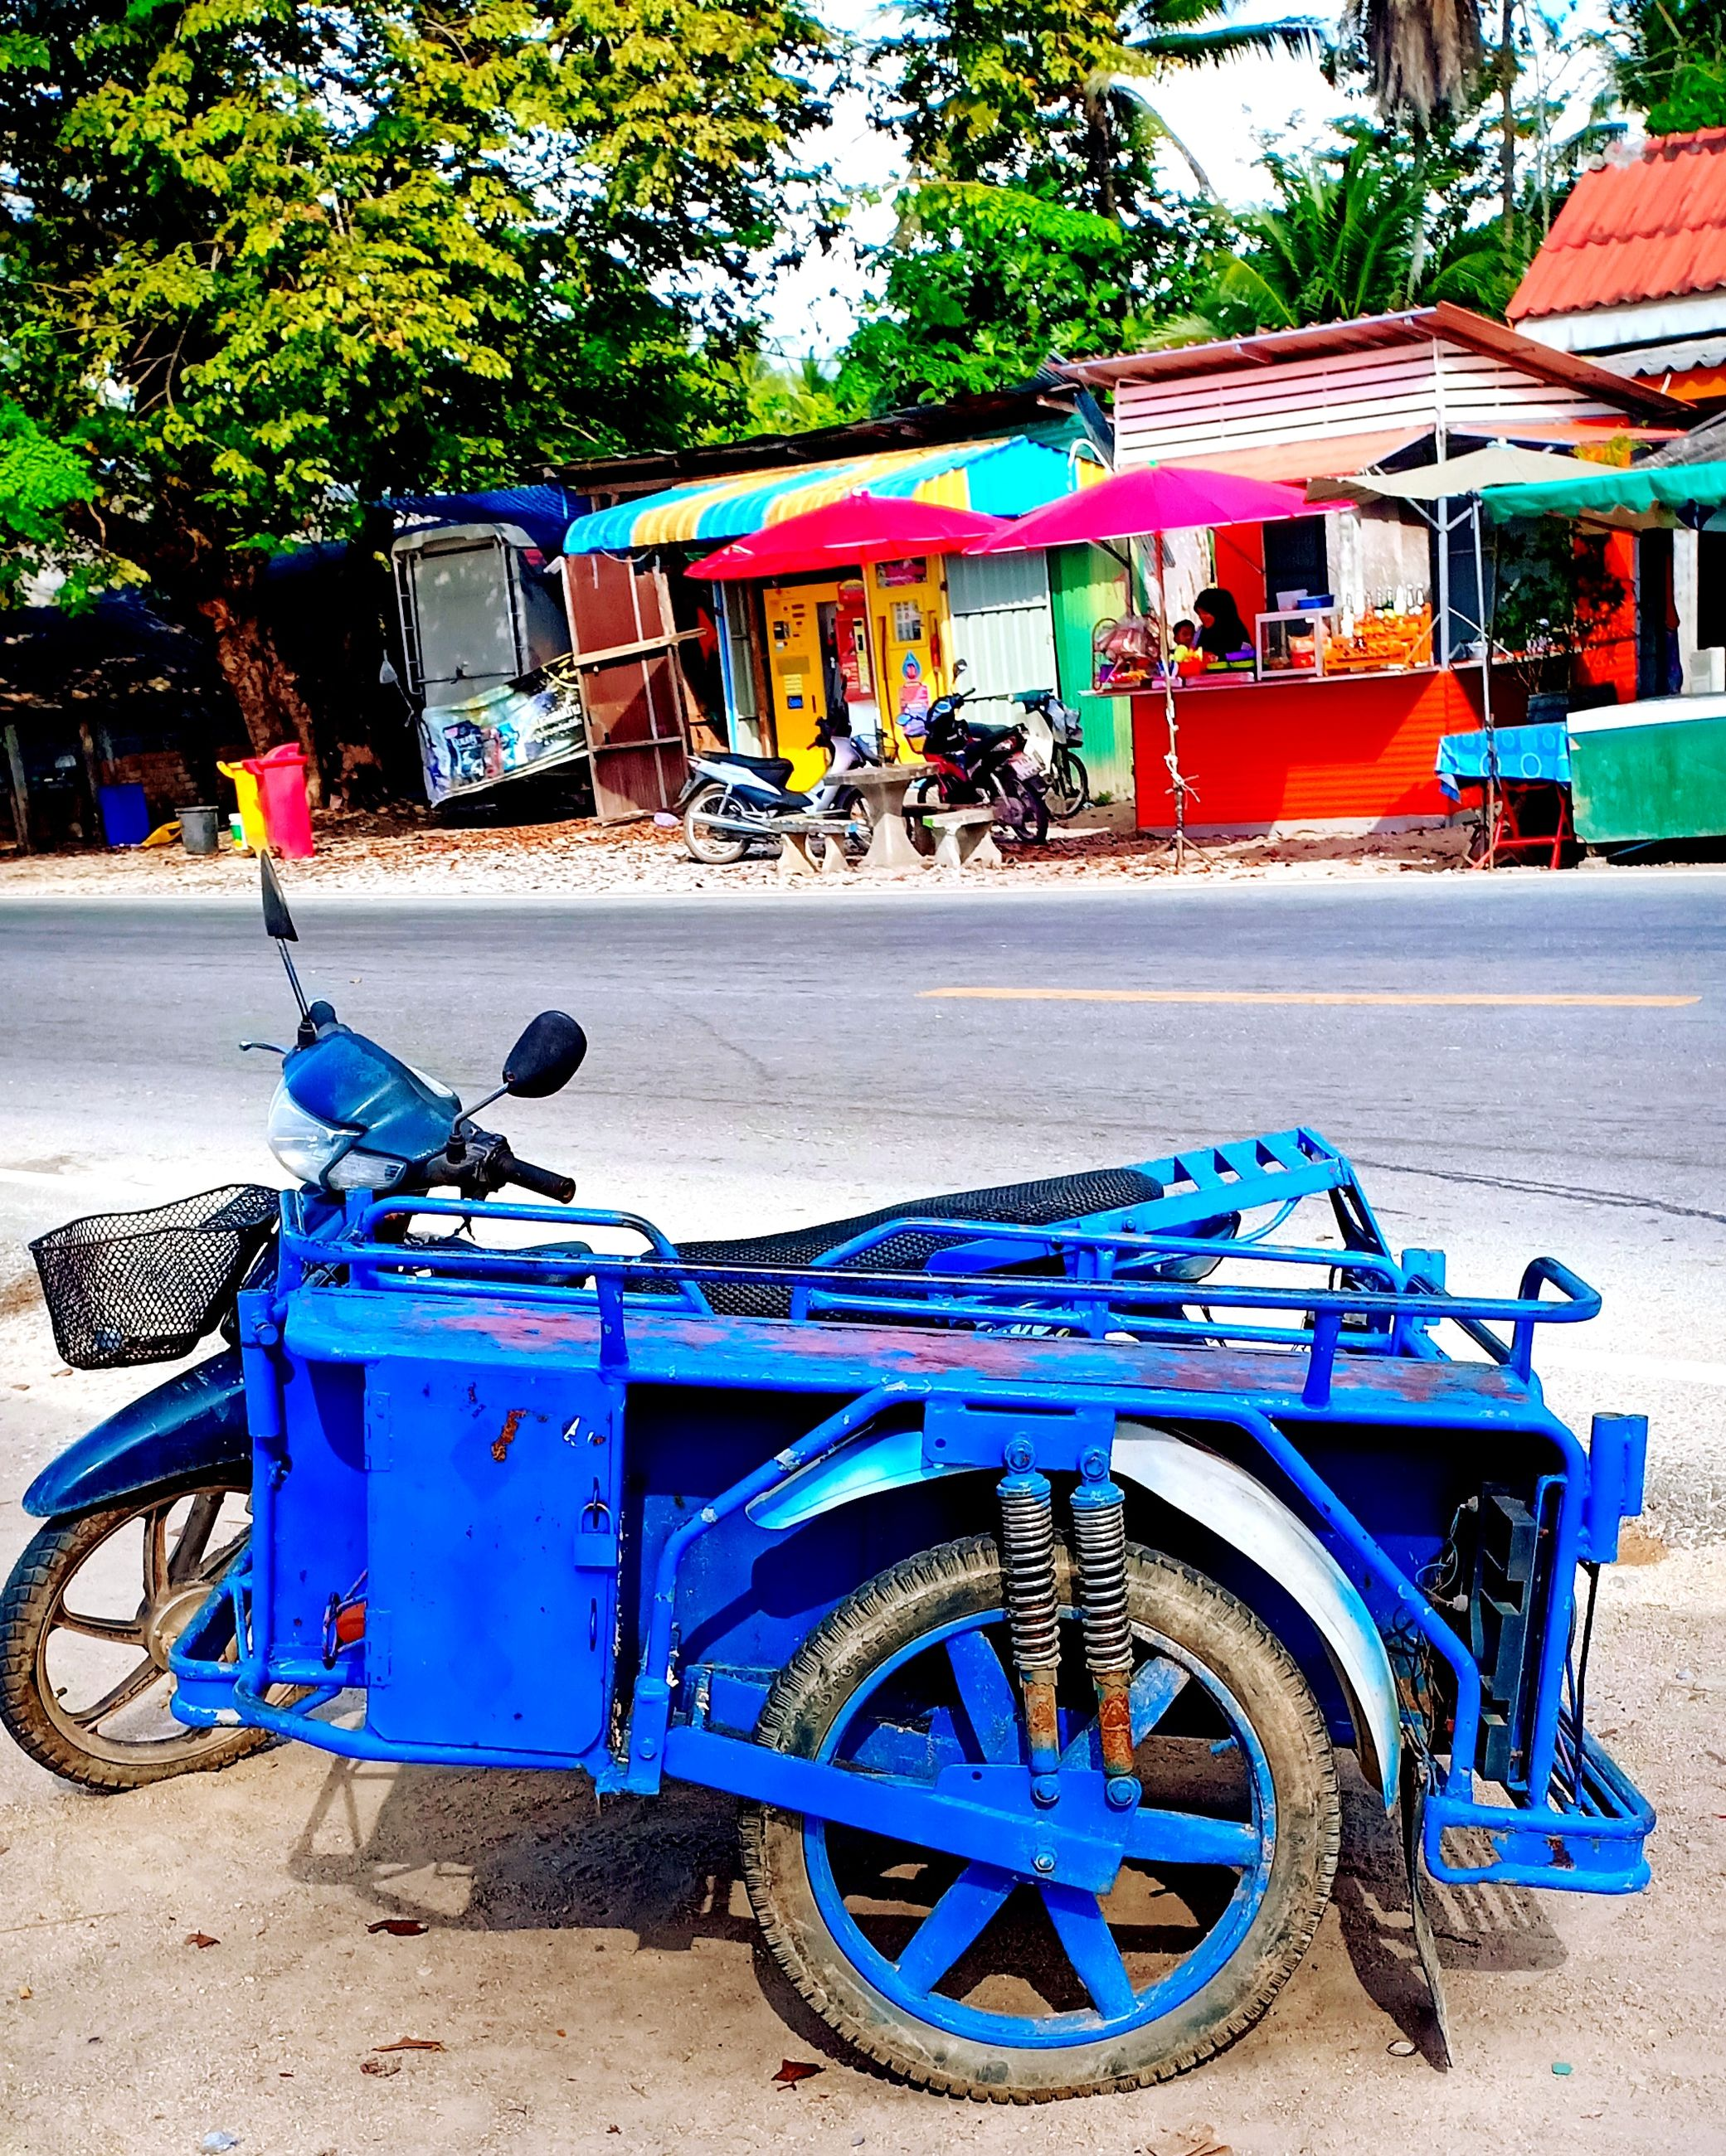 transportation, mode of transportation, city, street, architecture, land vehicle, incidental people, day, stationary, building exterior, road, outdoors, built structure, nature, tree, blue, car, rickshaw, motor vehicle, wheel